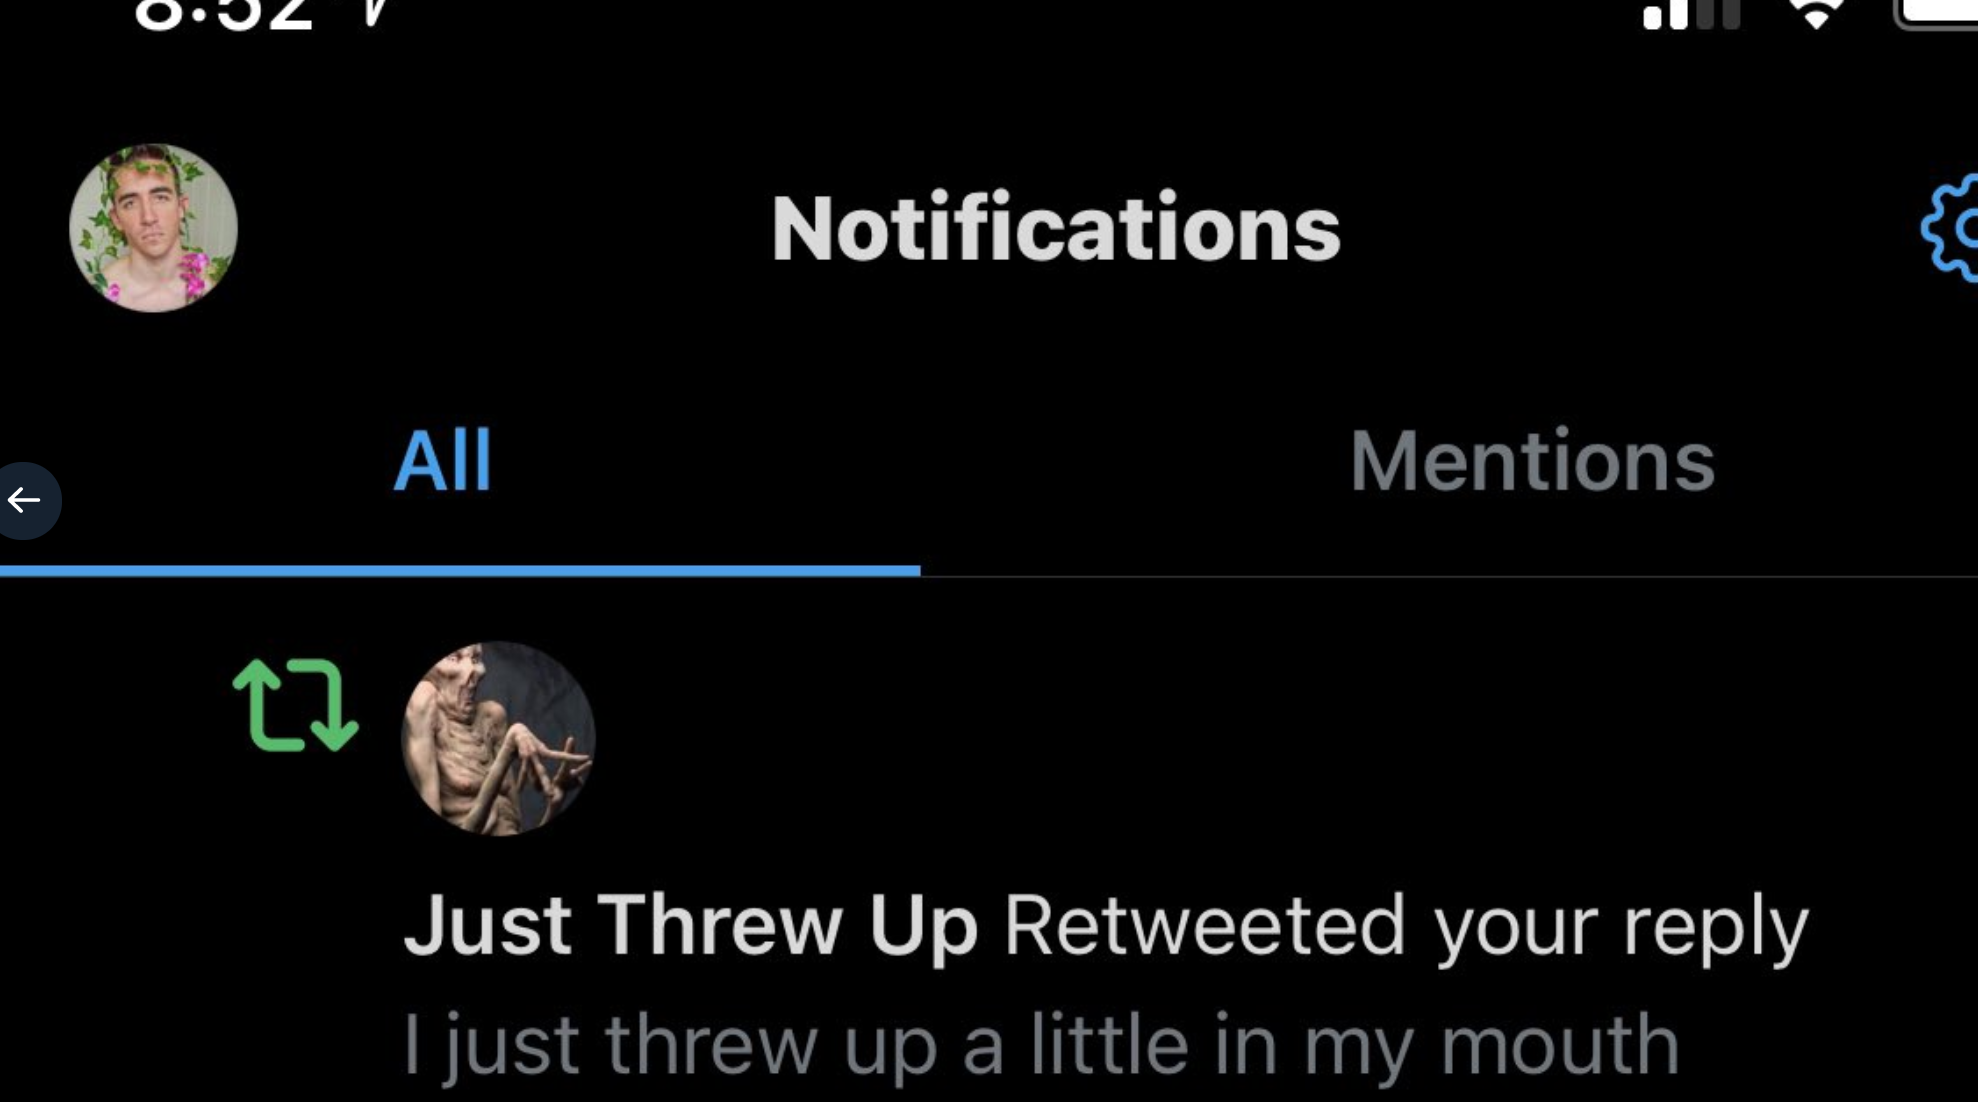 """Just Threw Up"" account retweeting a tweet about throwing up"